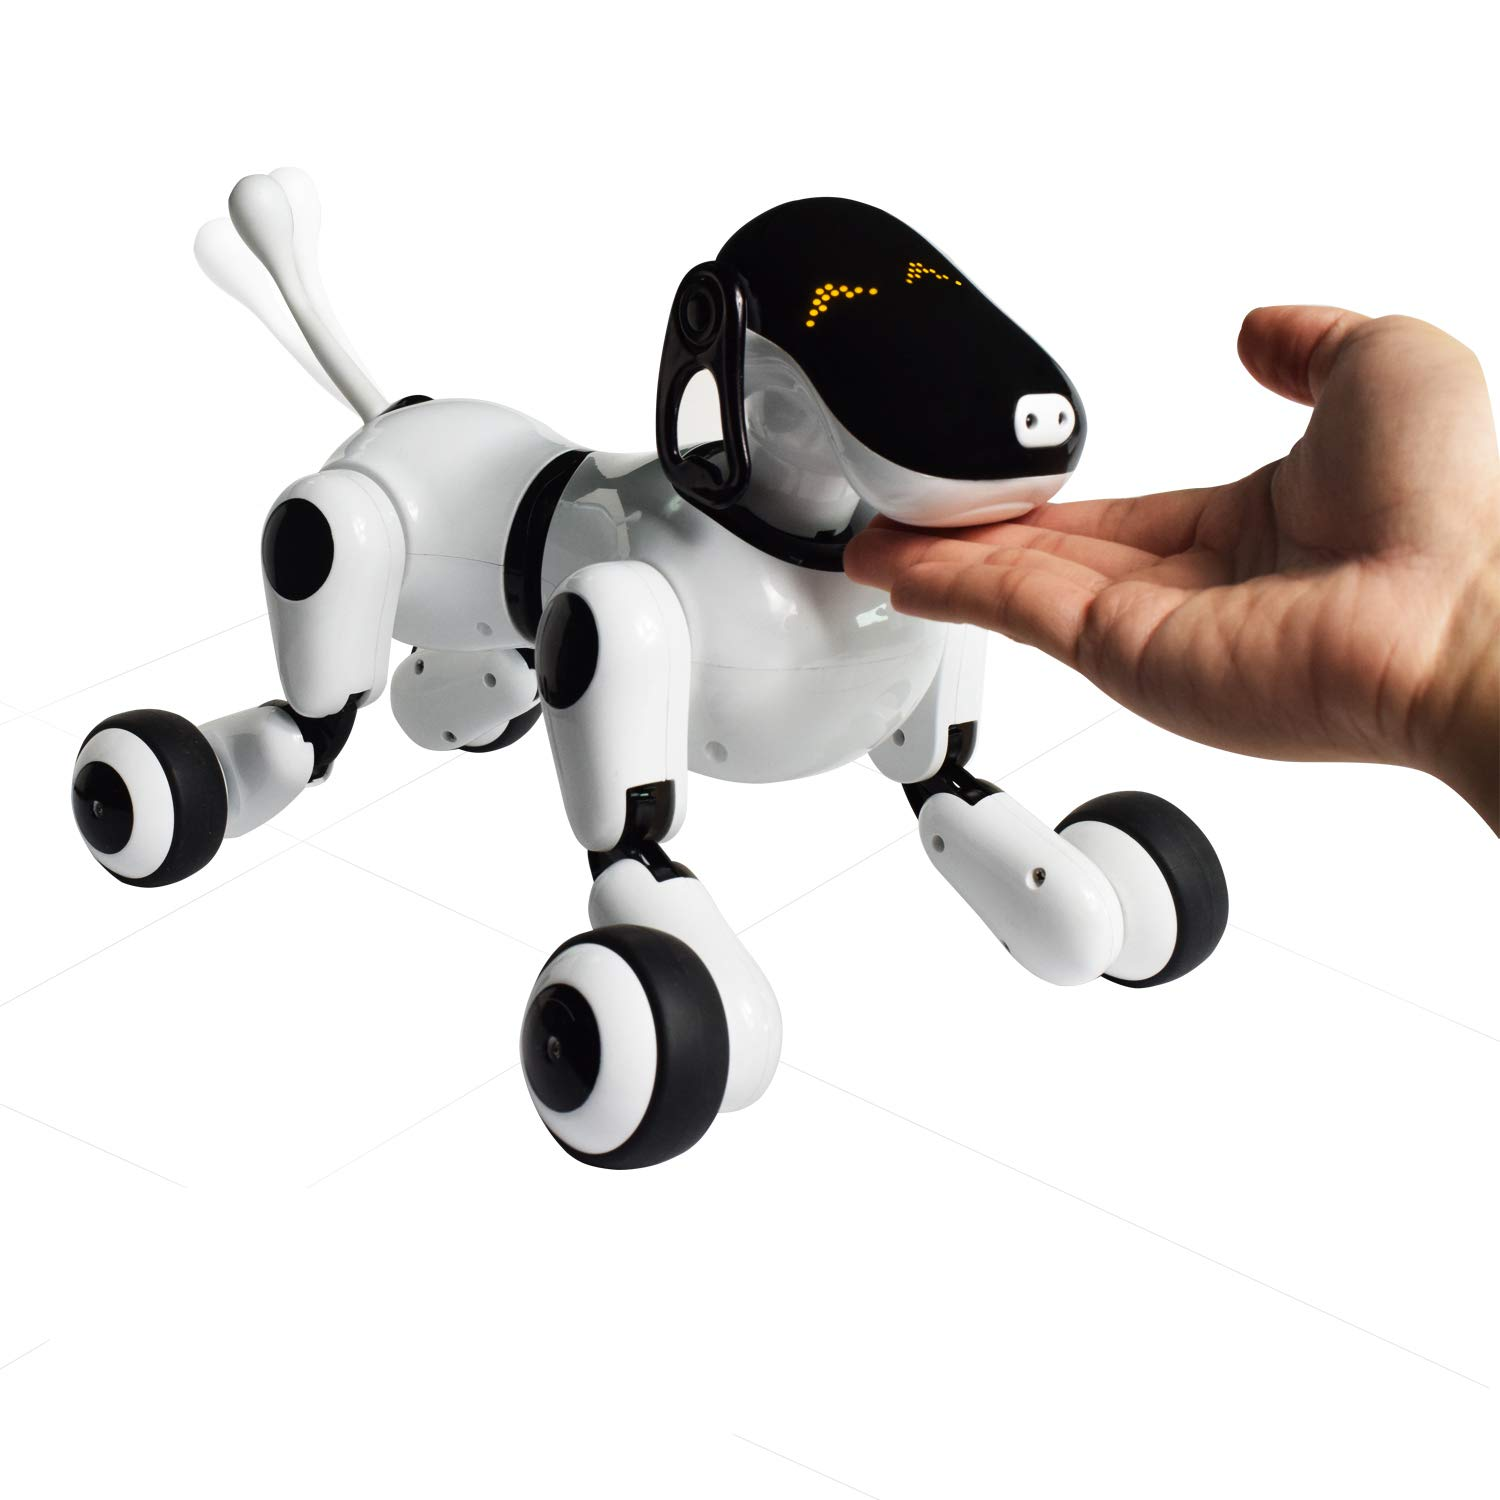 Contixo Independance Day Puppy Smart Interactive Robot Pet Toy for Kids, Voice, App, and Touch Controlled by Contixo (Image #6)